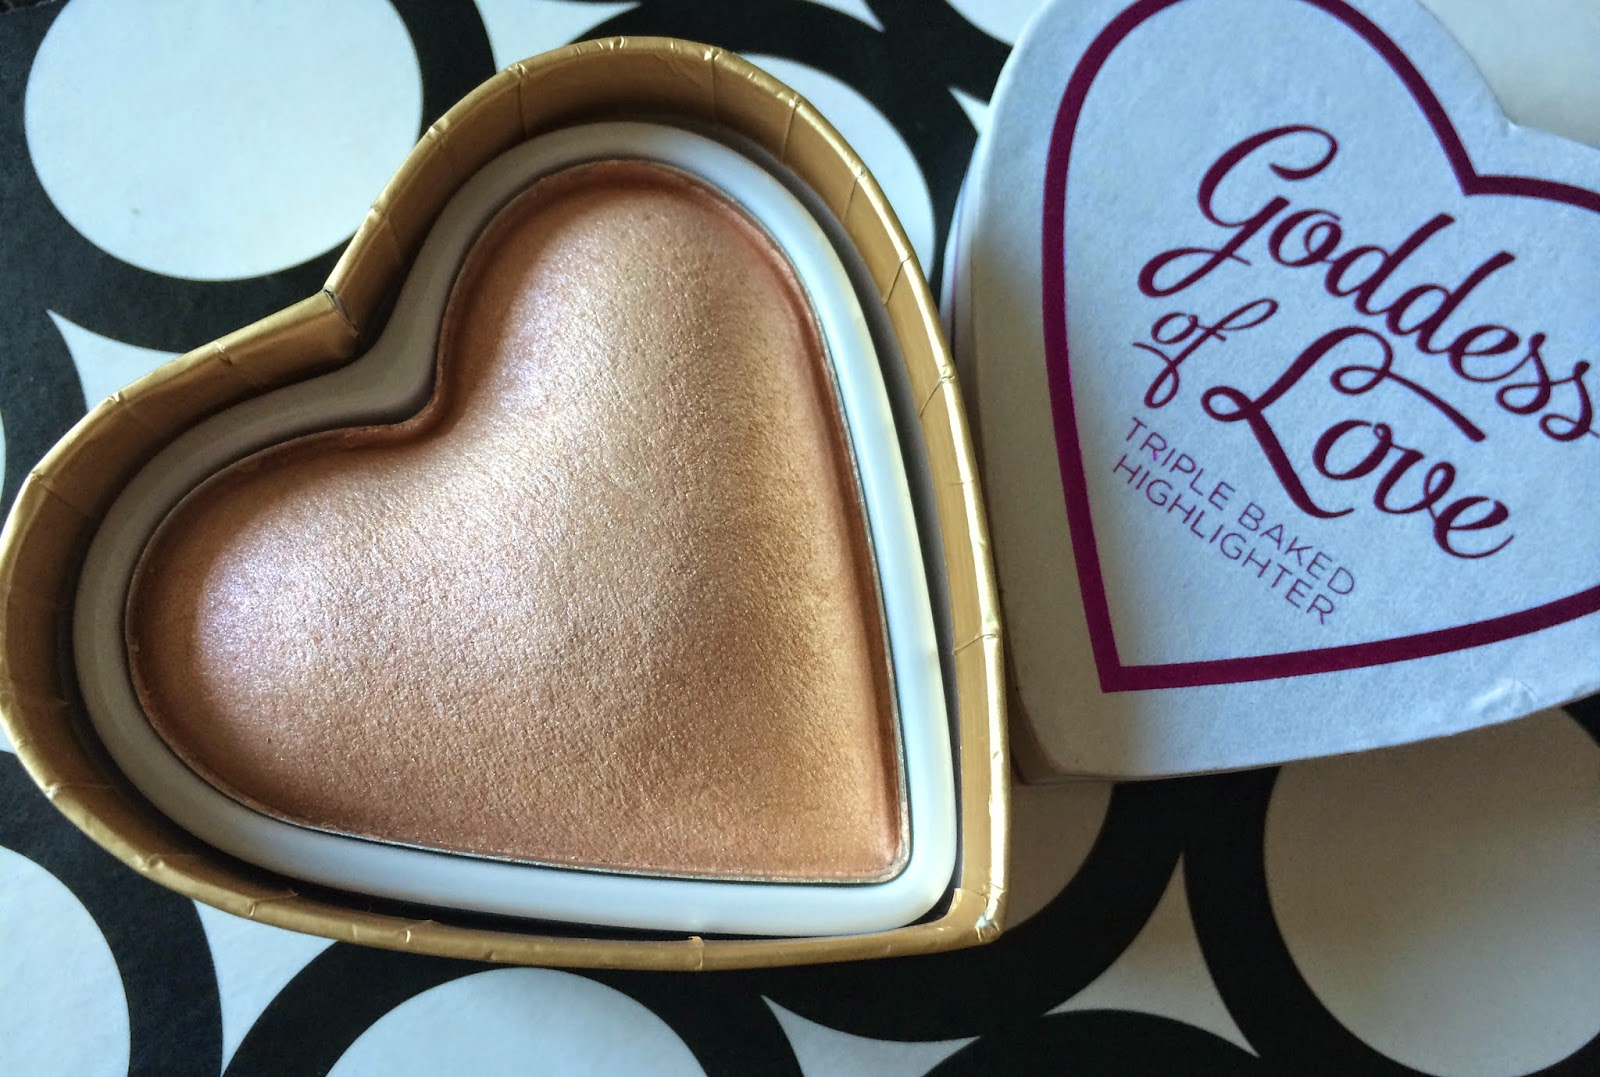 Makeup Revolution I Heart Makeup Goddess of Love Highlighter